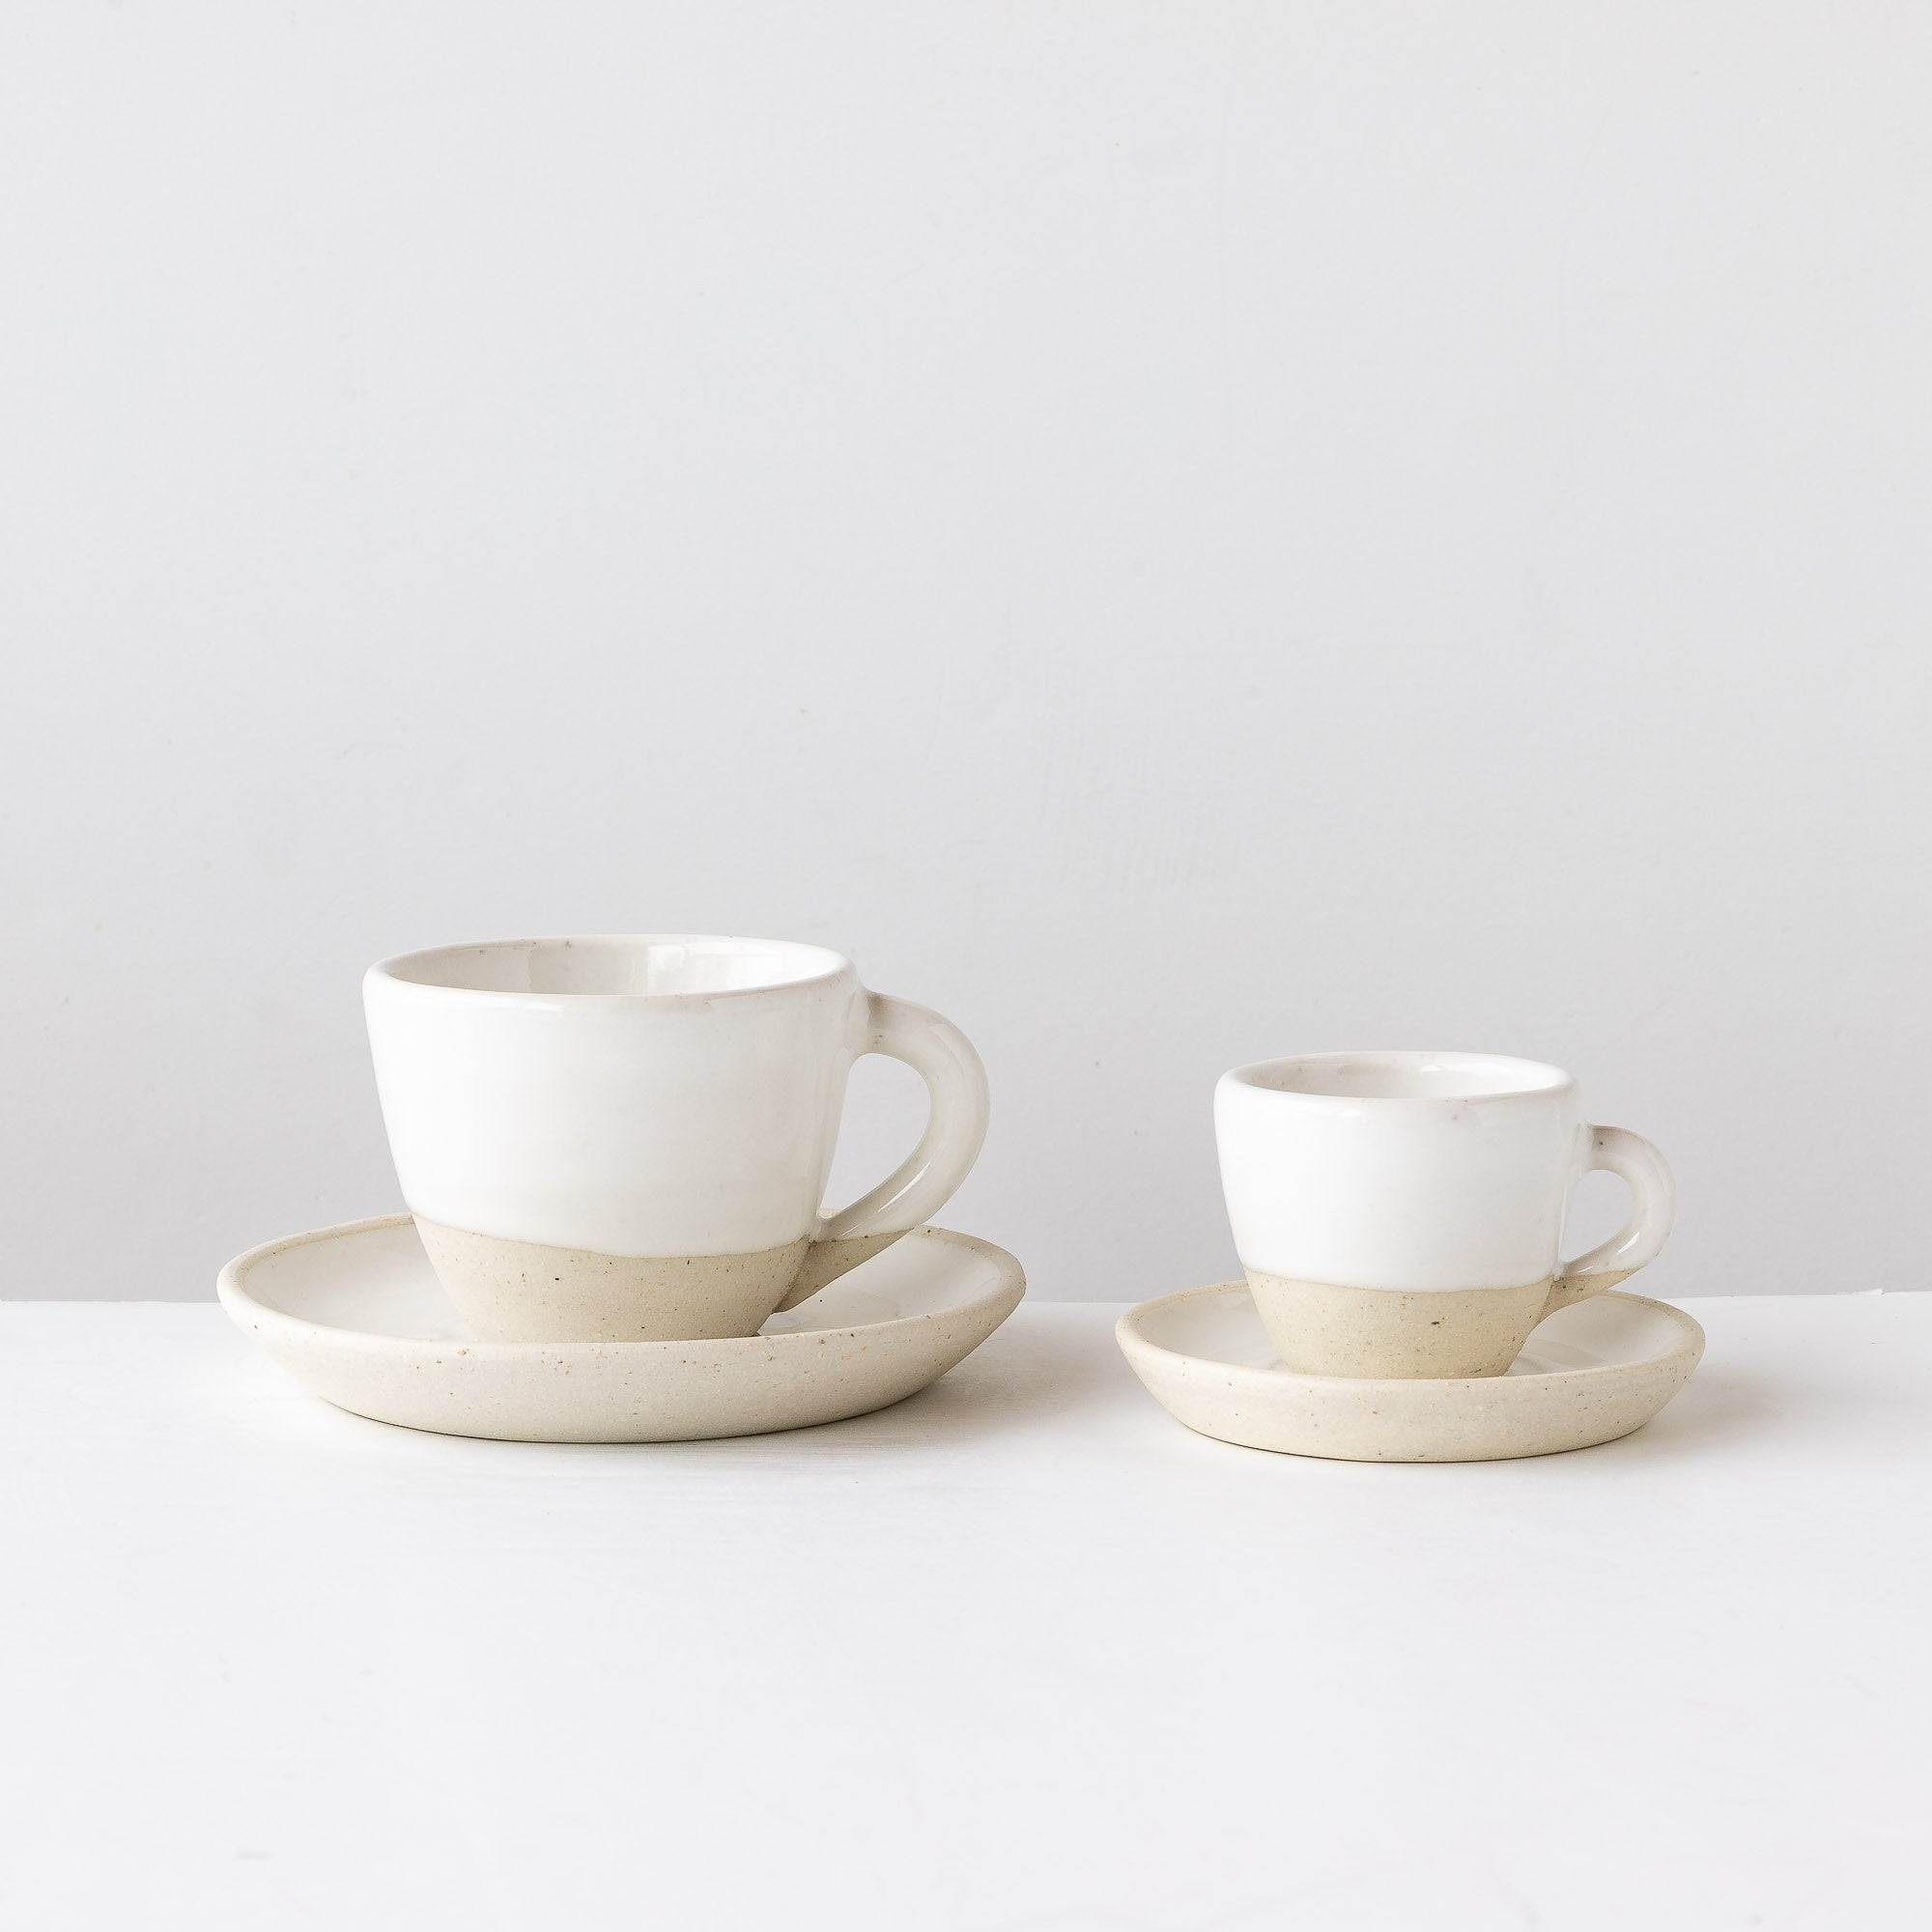 Handmade Ceramic Espresso and Cappuccino Coffee Cup & Saucer Set - Sold by Chic & Basta